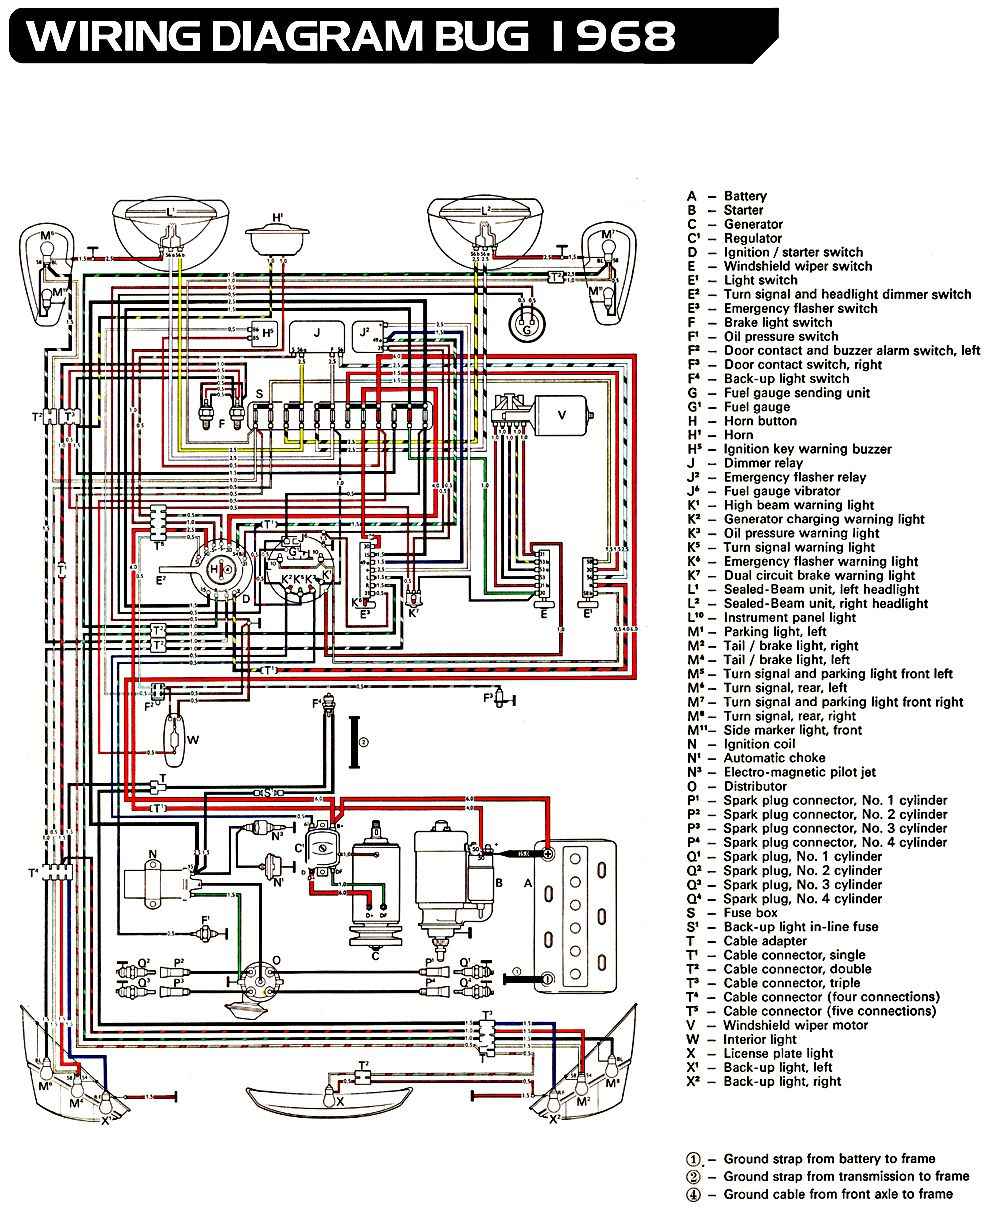 3a1908112d3826270ed5e3be362292bf 1969 vw beetle wiring harness 1974 vw beetle complete wiring Turn Signal Flasher Wiring-Diagram at gsmx.co